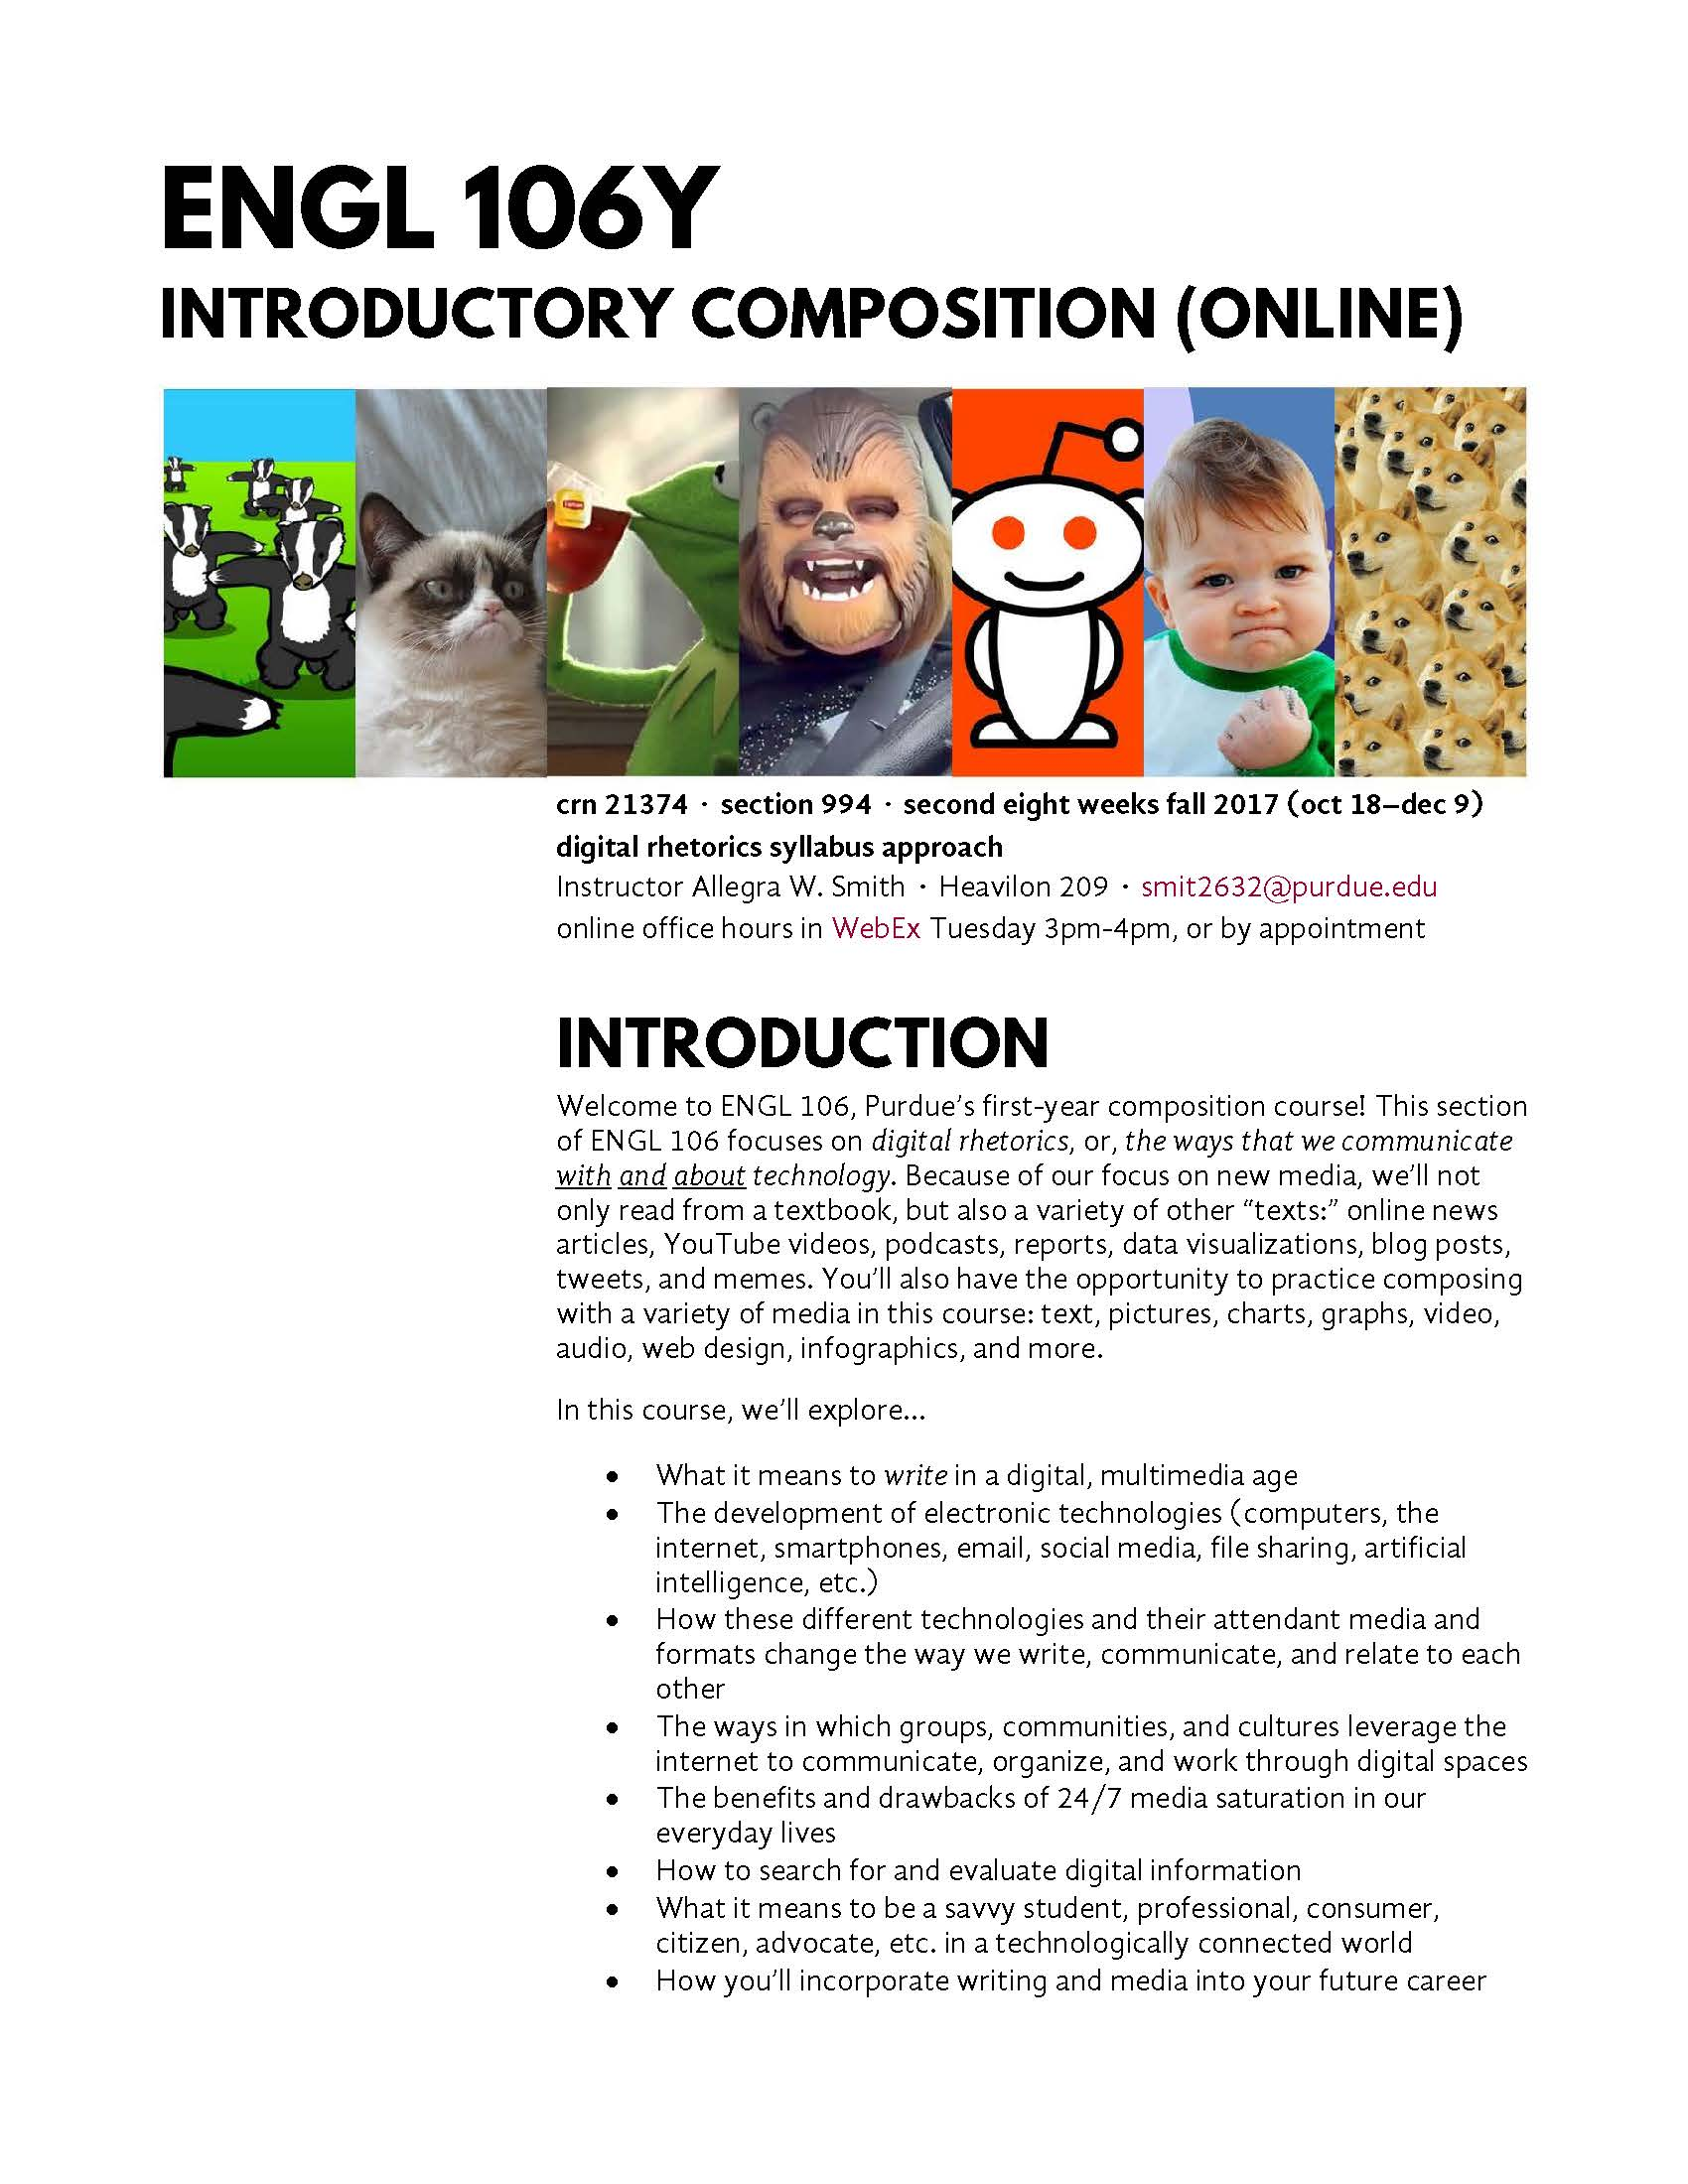 """the first page of the ENGL 106Y syllabus, which features images of various memes (badger badger mushroom, grumpy cat, success kid, doge, etc.) to represent the course theme of """"digital rhetorics"""""""